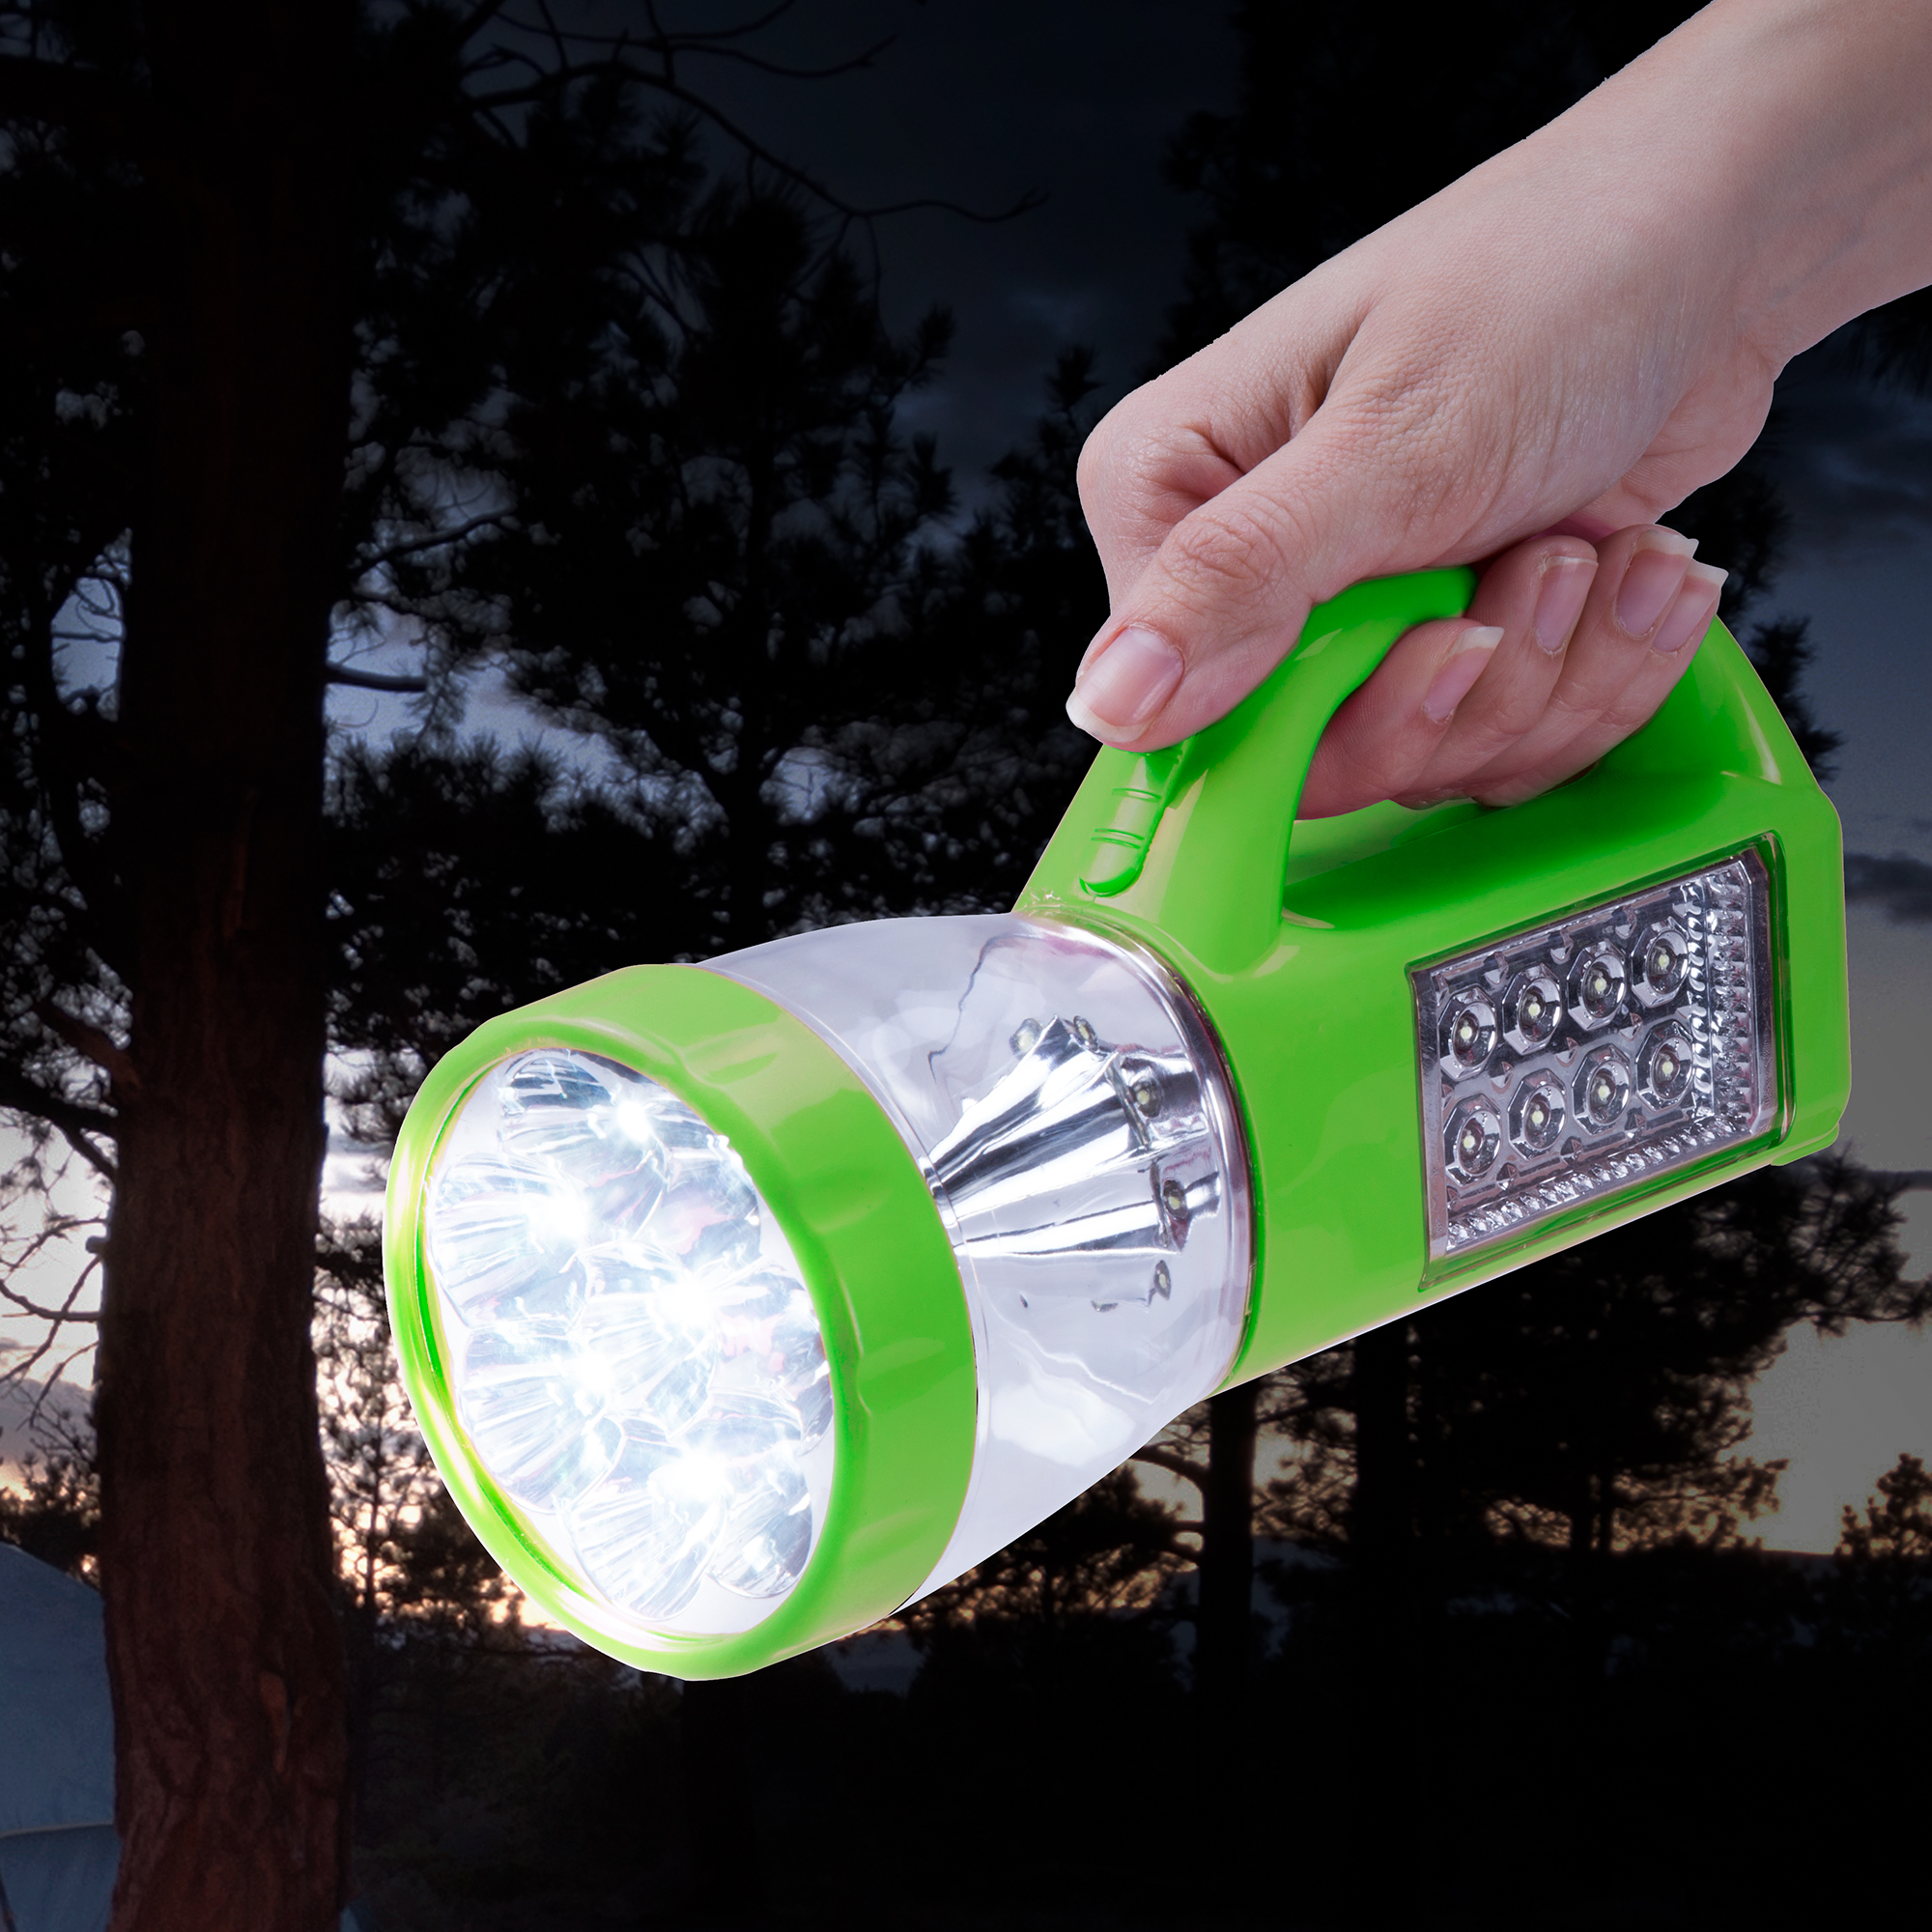 3 in 1 LED Lantern, Flashlight and Panel Light, Lightweight Camping Lantern By Wakeman Outdoors (For Camping Hiking... by Trademark Global LLC